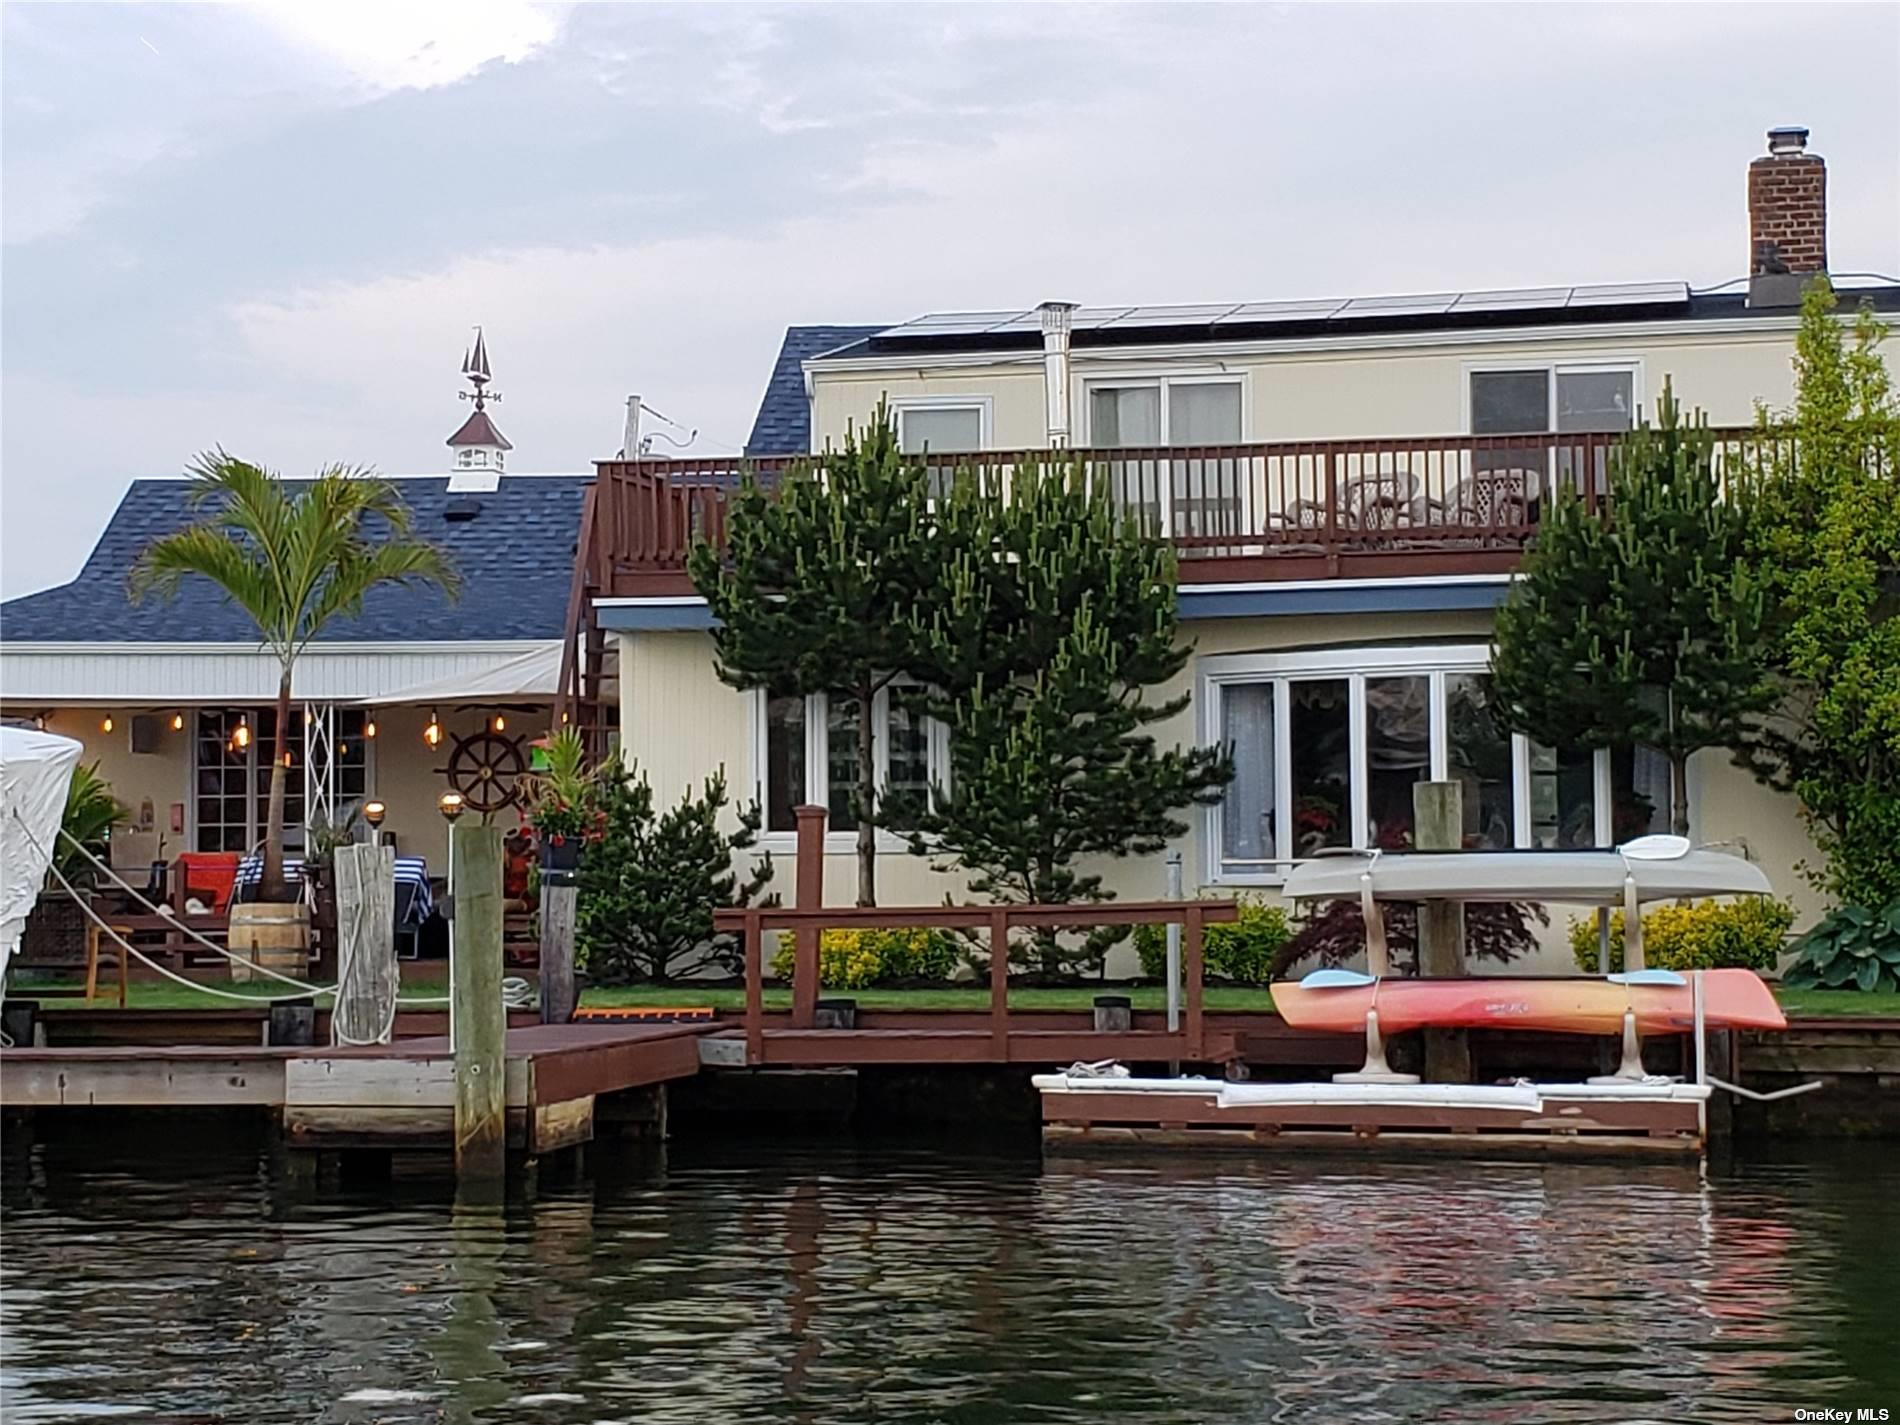 Boaters/Entertainers/Family Paradise! Oversized lot with 200+ foot bulkhead on a wide river minutes to open bay on a cul-de-sac!  Waterfront includes 300 feet of lighted boardwalk and L-shaped pier with water/electric towers, launch ramp, lift and floating dock with kayak storage/launch.  Water views from 8 rooms and 2 oversized attics with skylights.  Upper deck accessible from 3 bedrooms and lower patio that includes kitchen with natural gas stove, BBQ, fridge and hot/cold water.  This estate includes 16x24 indoor heated pool with computerized salt system and new transparent roof.  The house boasts brand new Thermador kitchen, 4 new full bathrooms, video/alarm system and 2 fireplaces.  This fully fenced property has circular driveway and a separate road leading to a hidden 2 car garage with side space for RV/boats, 12 zone sprinklers and WiFi enabled 3 zone lights system.  It also includes brand new roof with solar powered electric supply and automated battery back-up system.